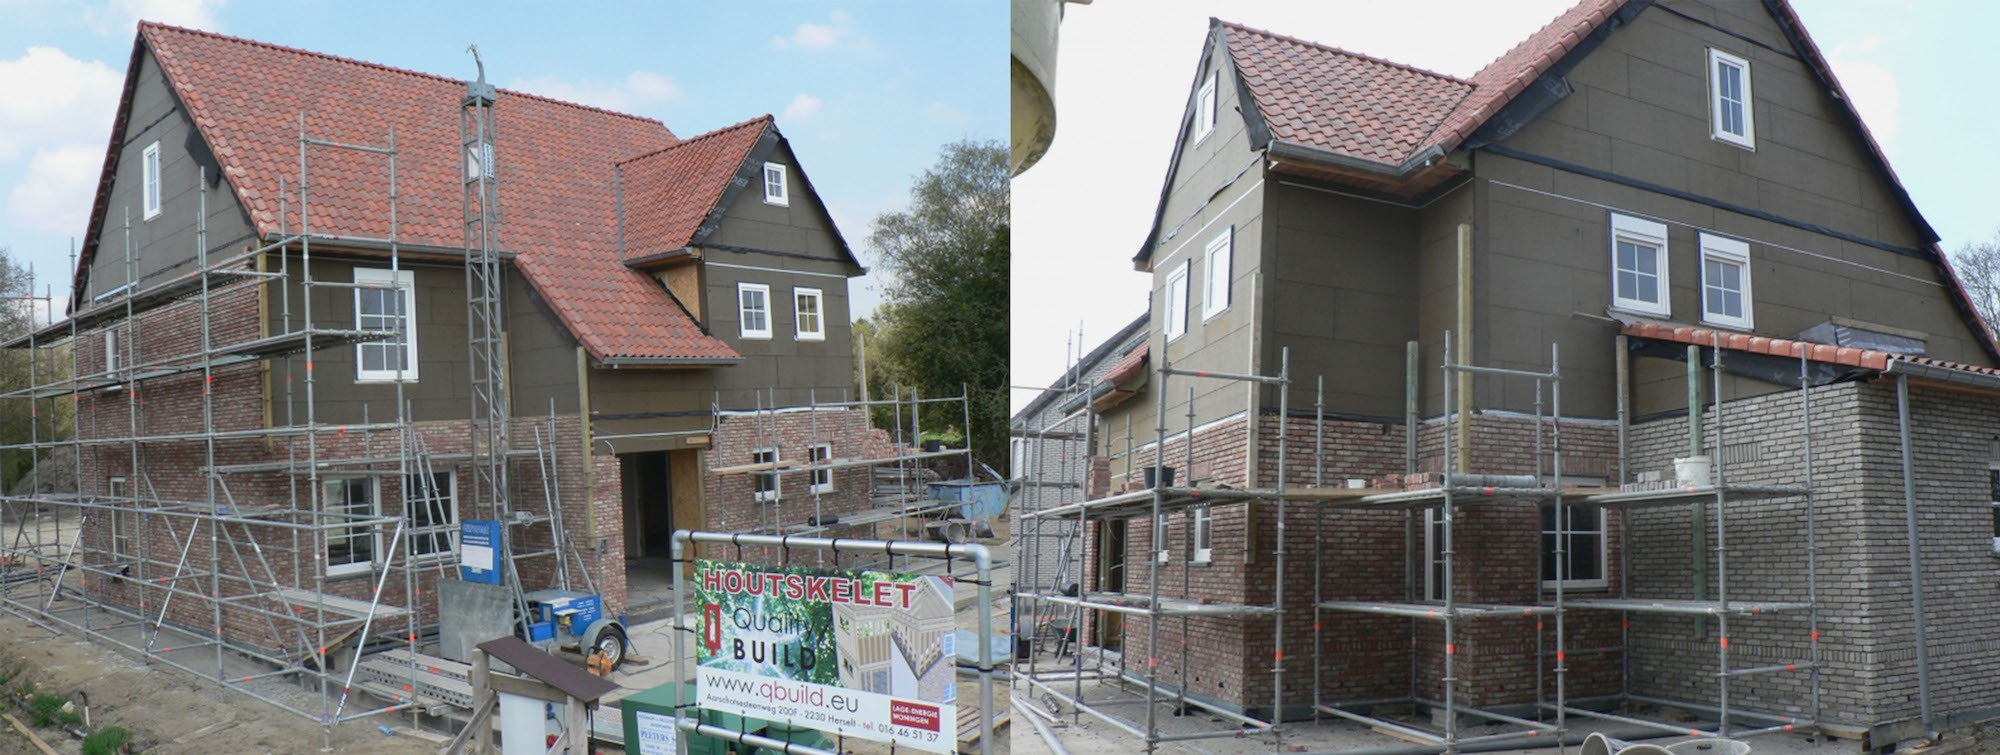 Header Quality BUILD - Houtskeletbouw Herselt